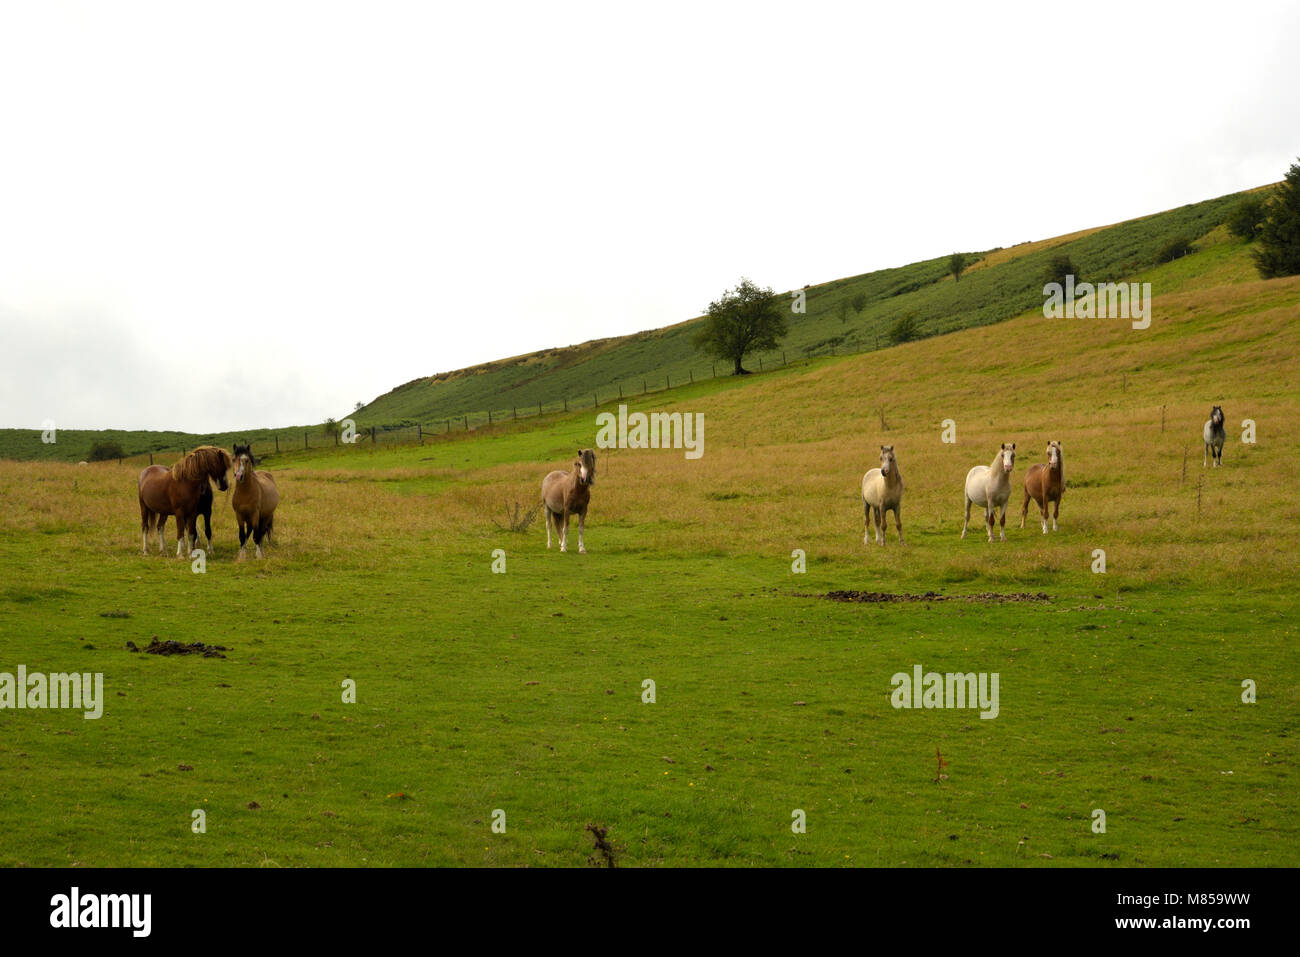 Ponies in a Welsh Hillside Field - Stock Image